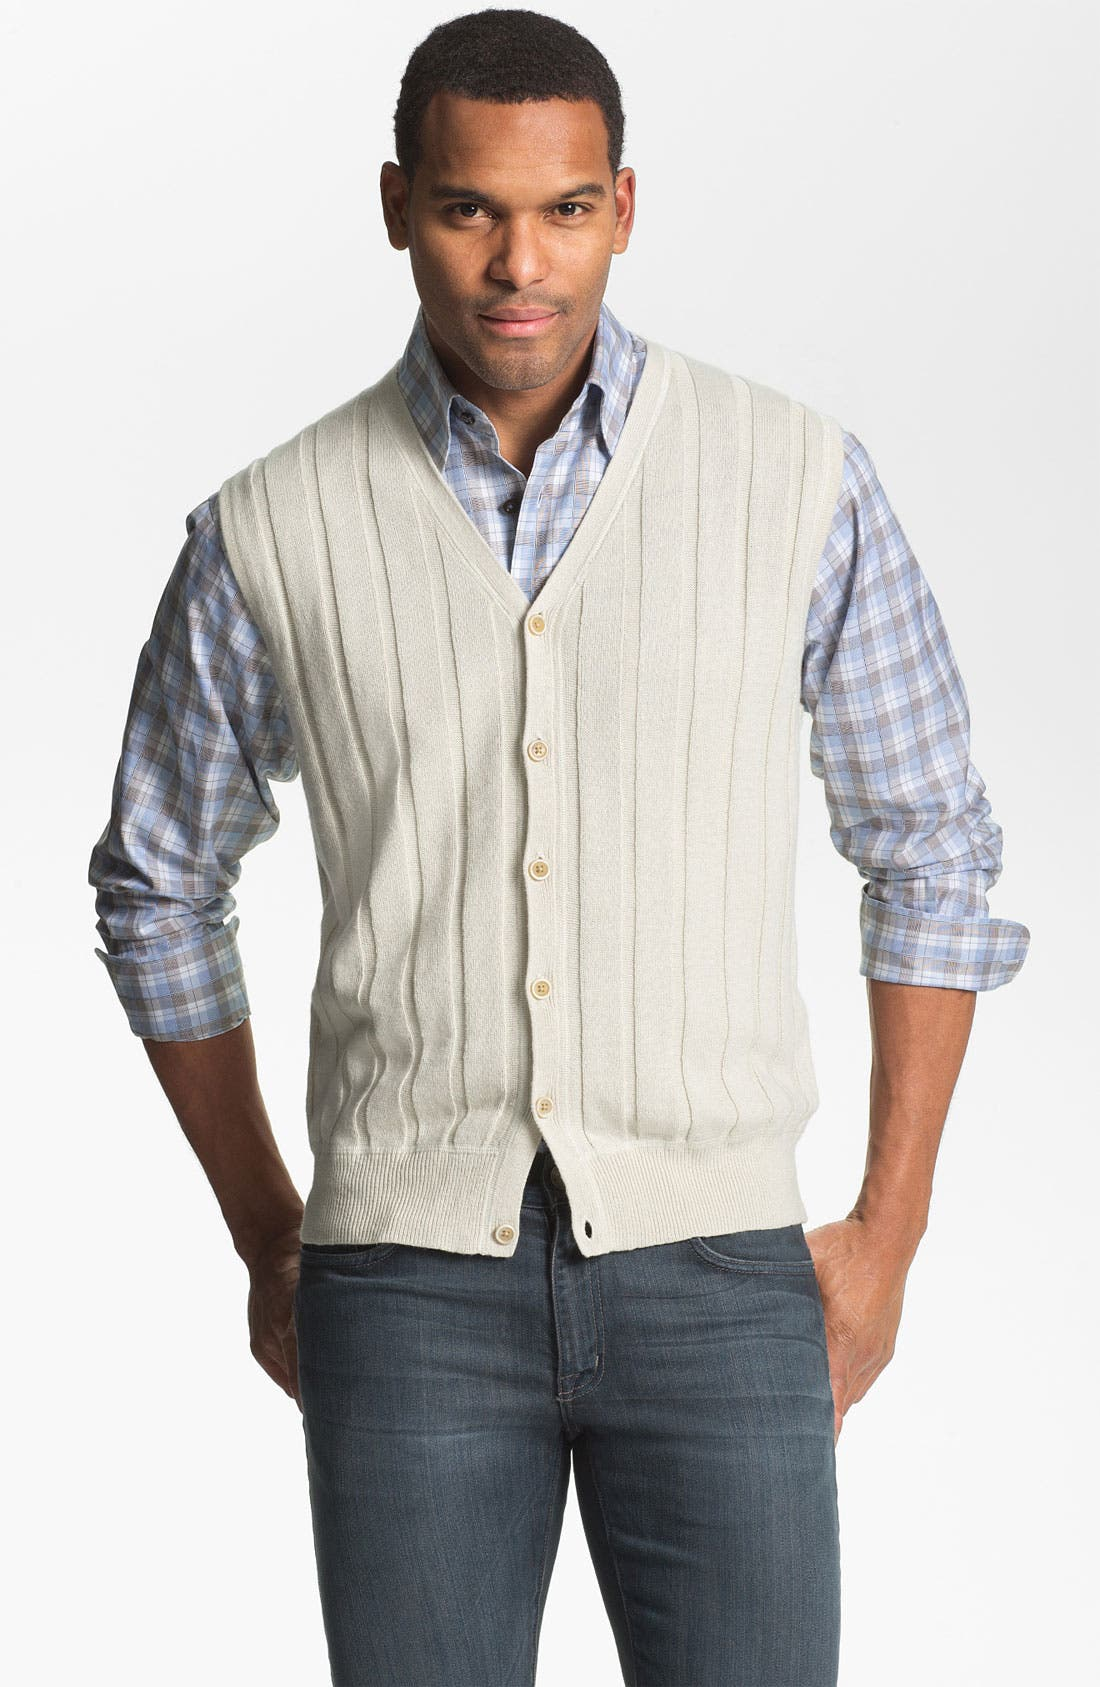 Main Image - Robert Talbott Linen & Cotton Sweater Vest